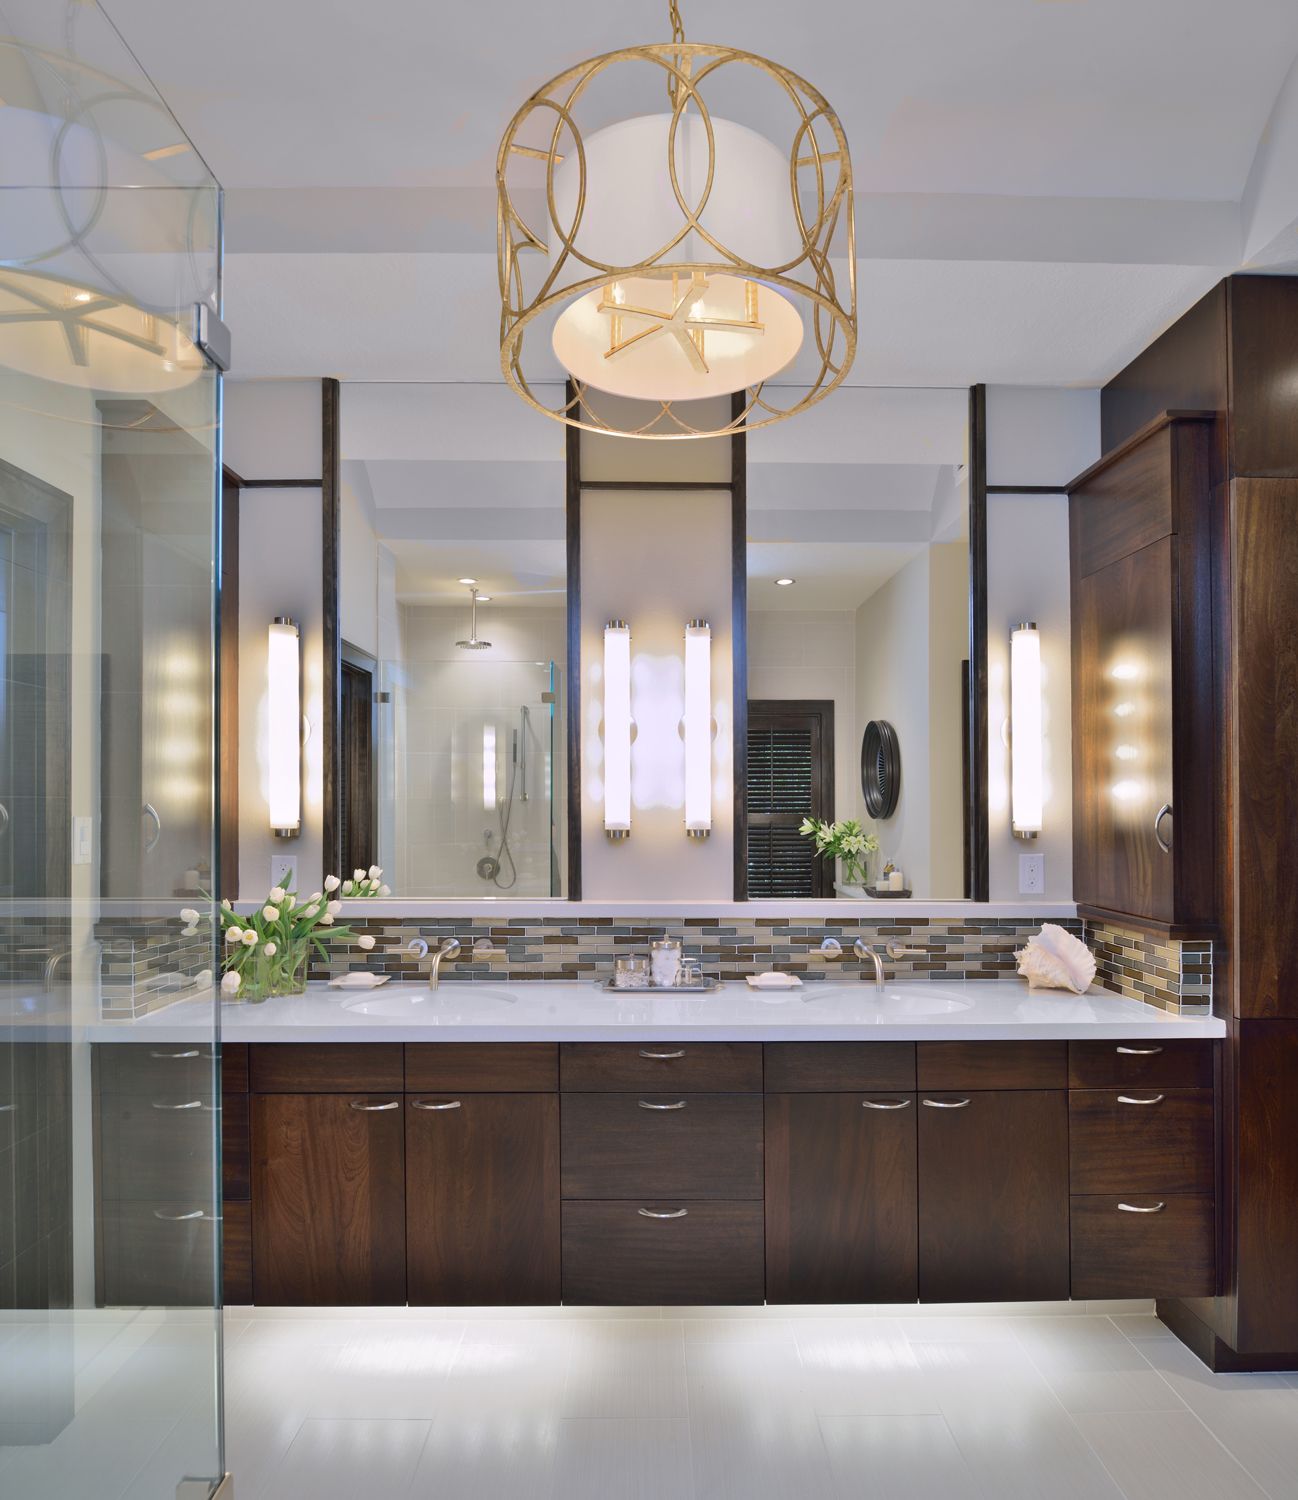 Master bathroom designs 2013 - Master Bathroom Designs 2013 Design In The Woods Master Bath Remodel Before And After